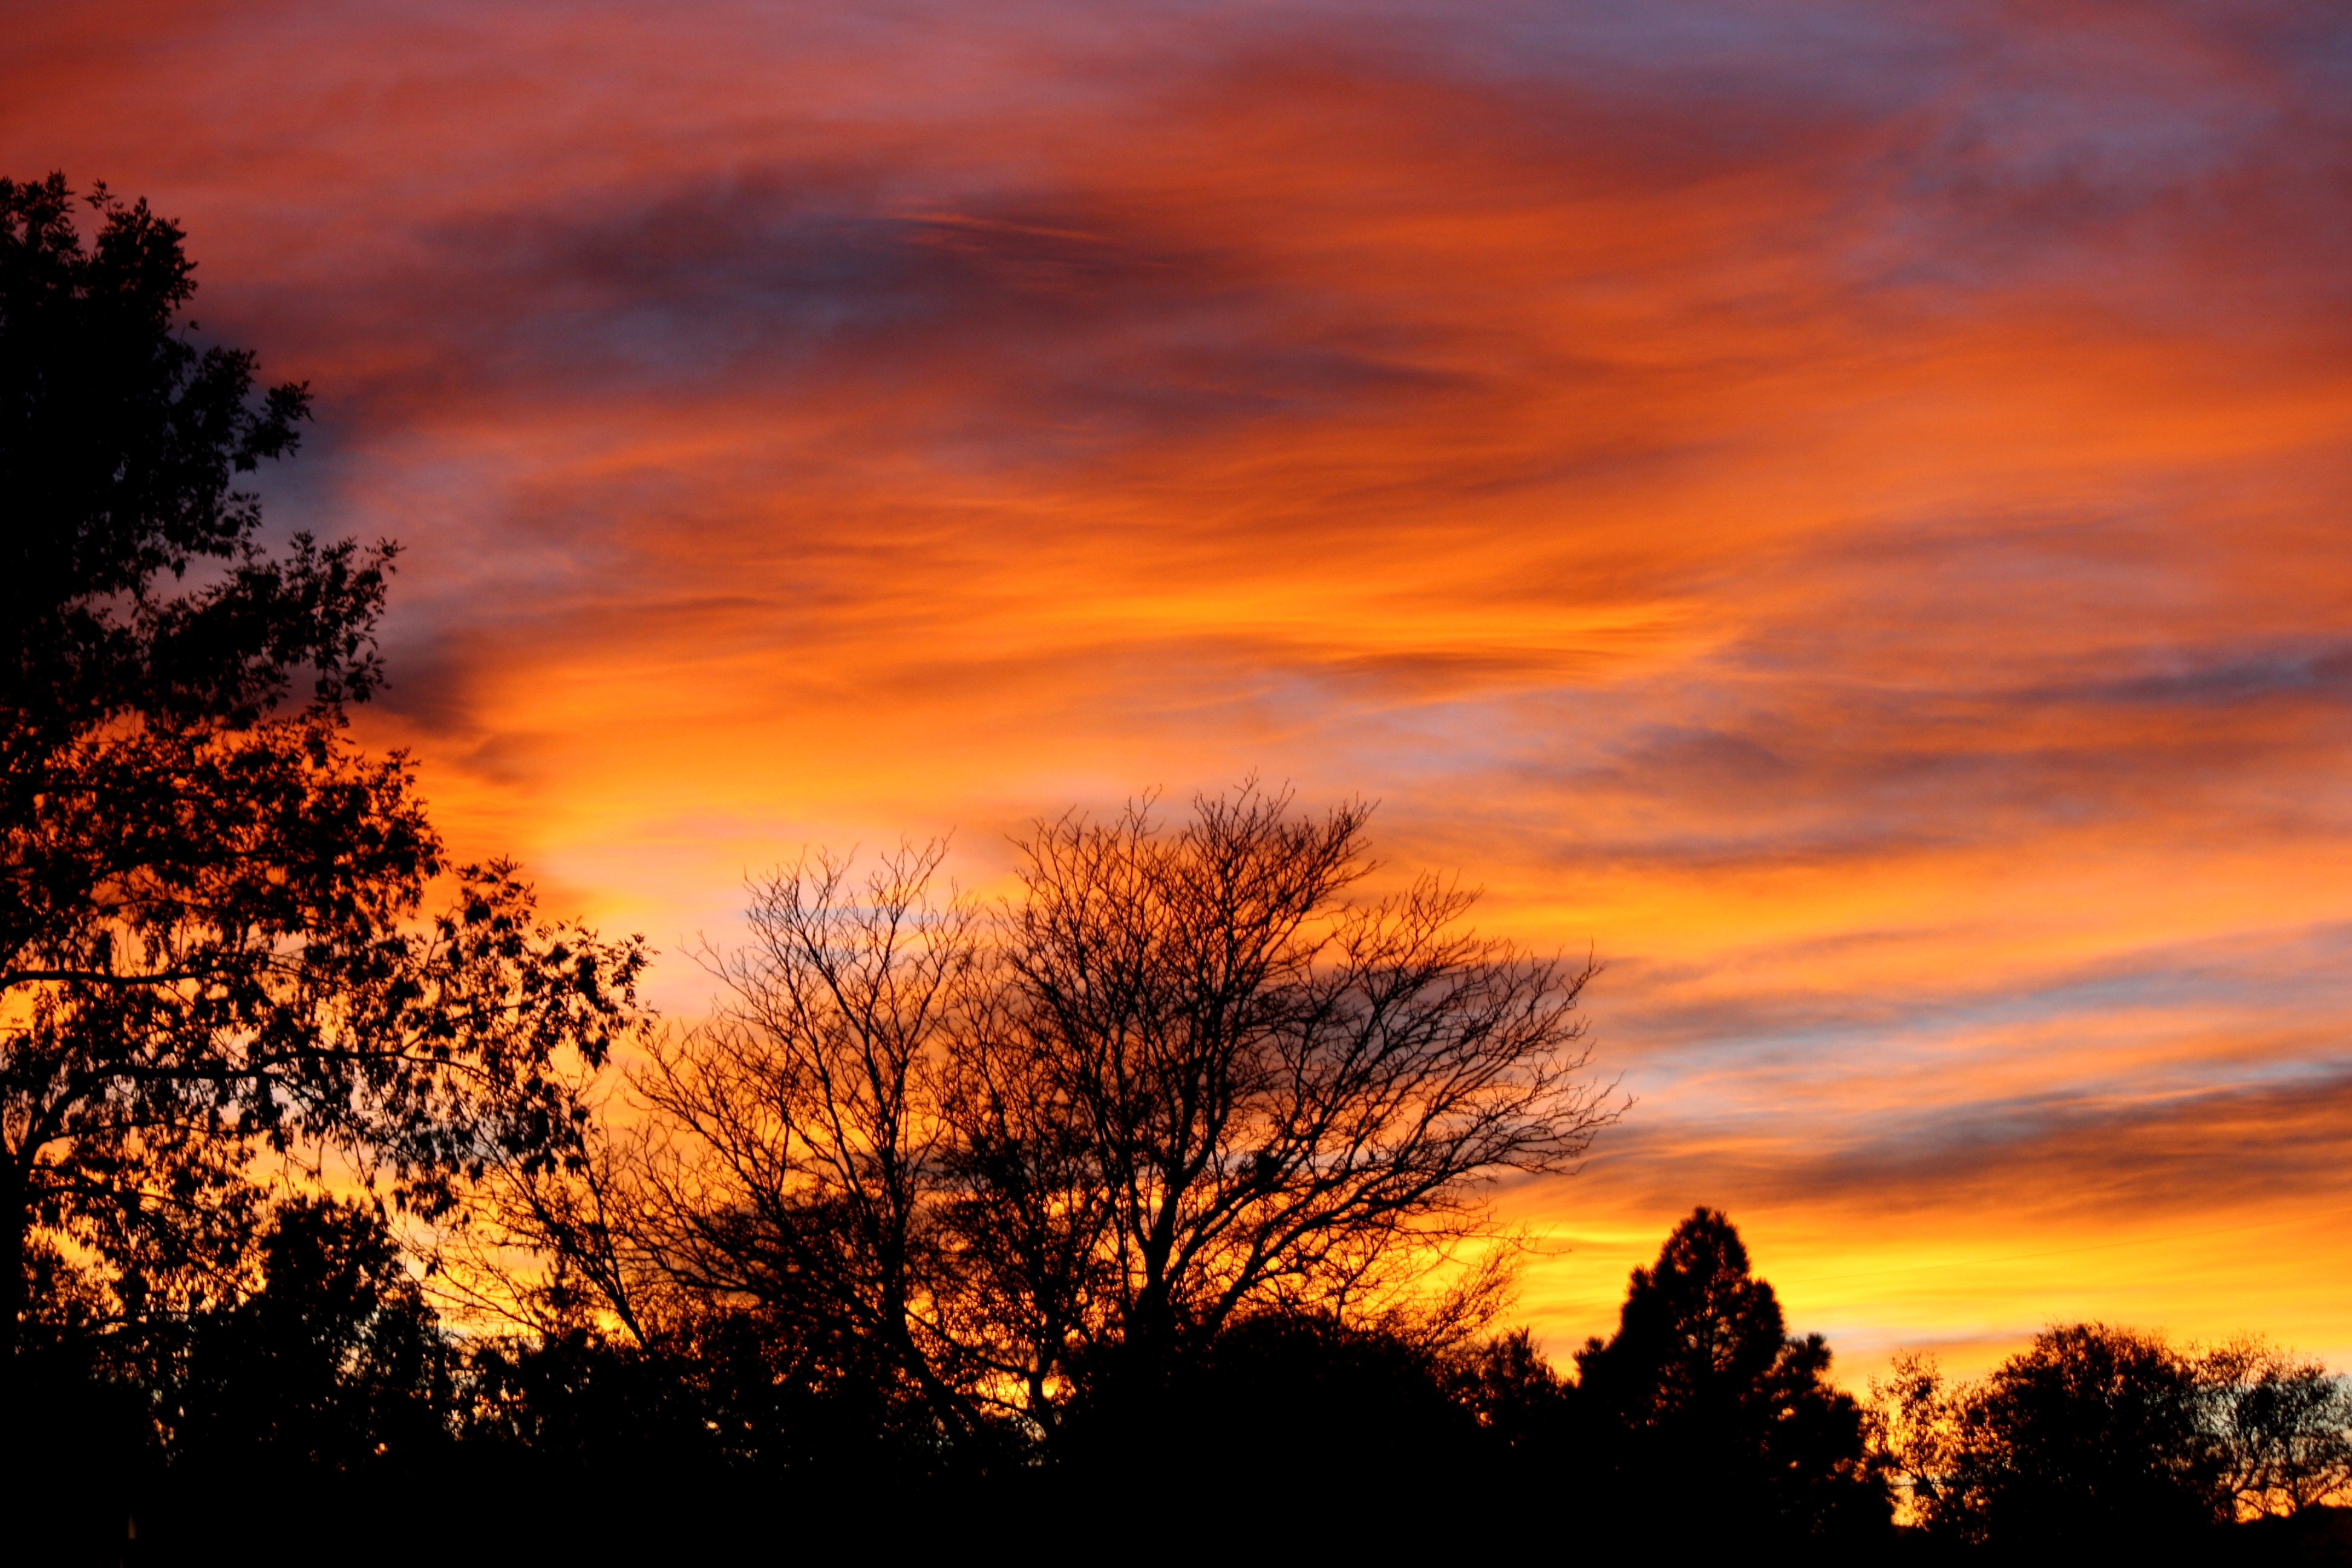 Orange Sunset with Trees Picture | Free Photograph | Photos Public ...